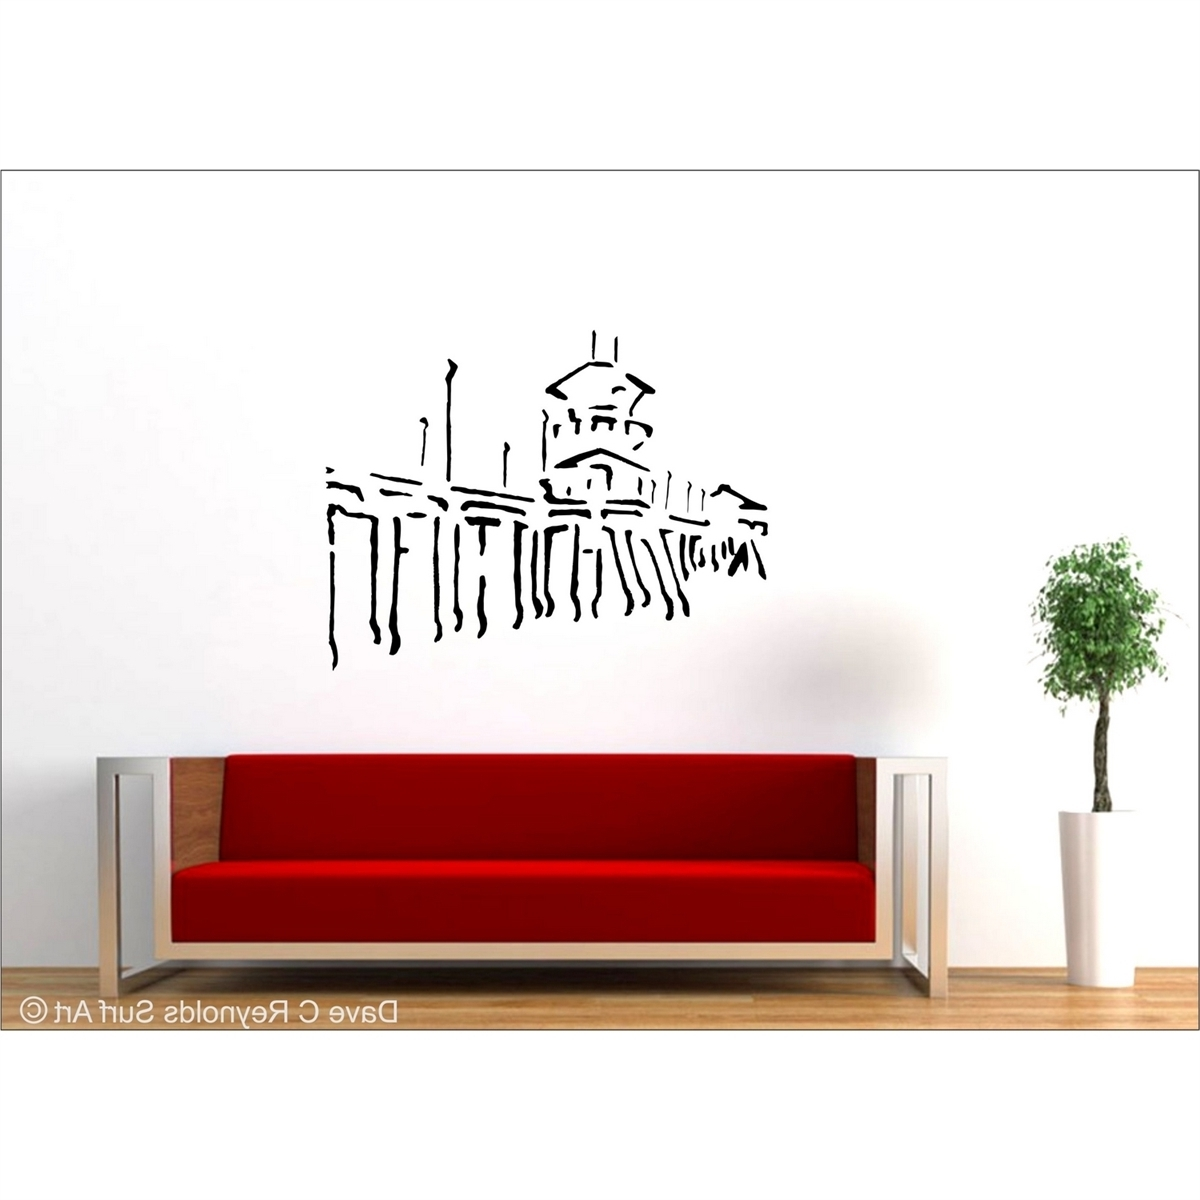 Wall Sticker Art Intended For Most Current Huntington Beach Pier Vinyl Wall Decal Art (View 9 of 15)